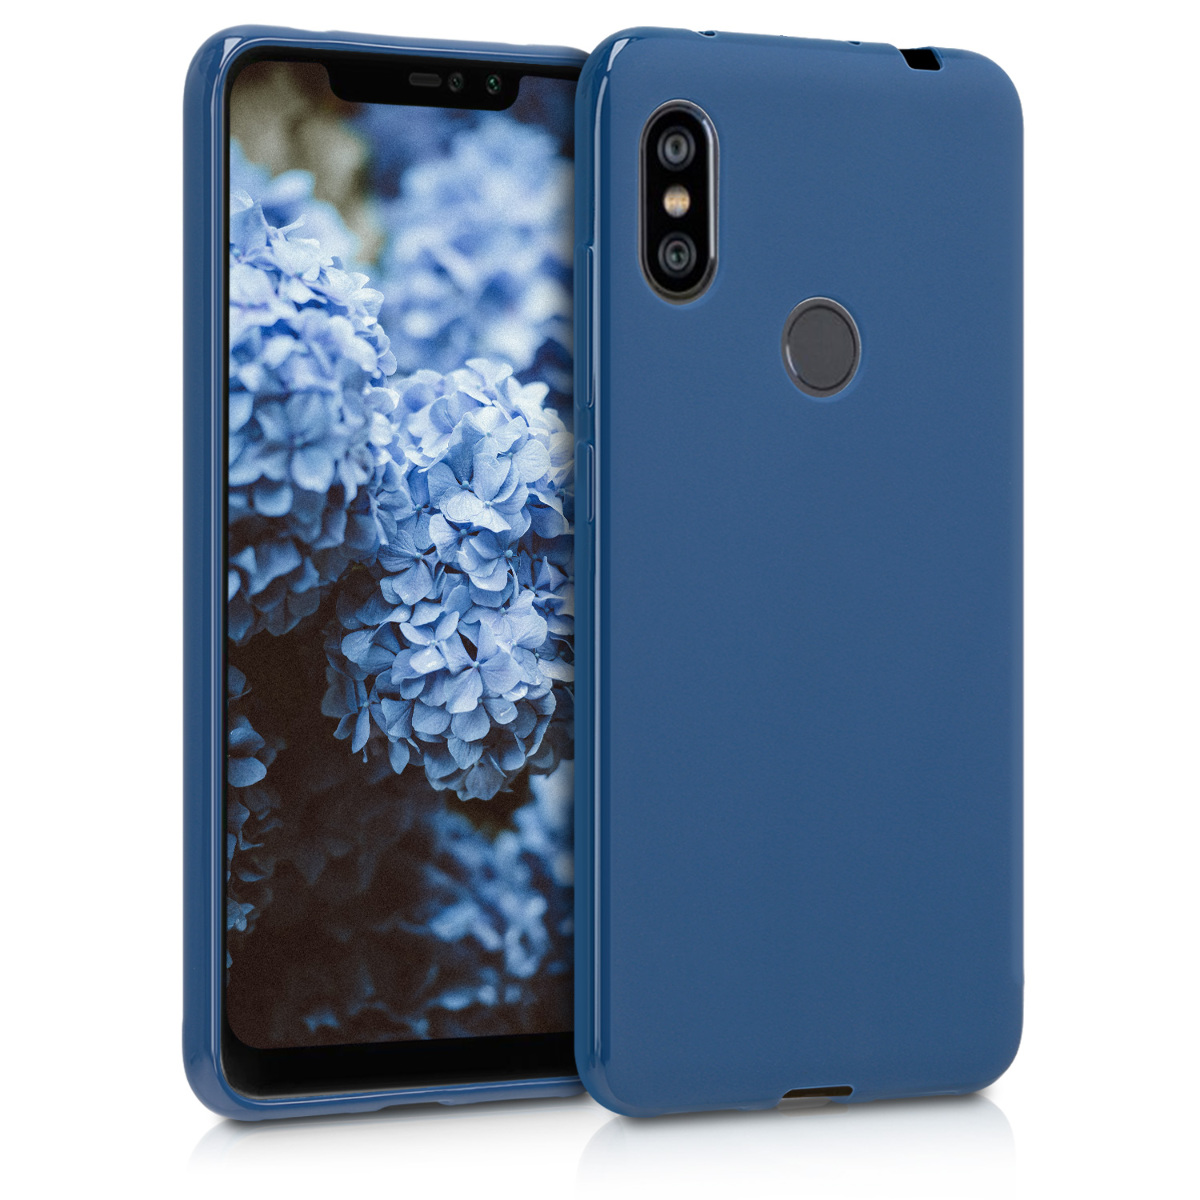 KW Θήκη Σιλικόνης Xiaomi Redmi Note 6 Pro - Soft Flexible Shock Absorbent  - Navy Blue (46506.116)